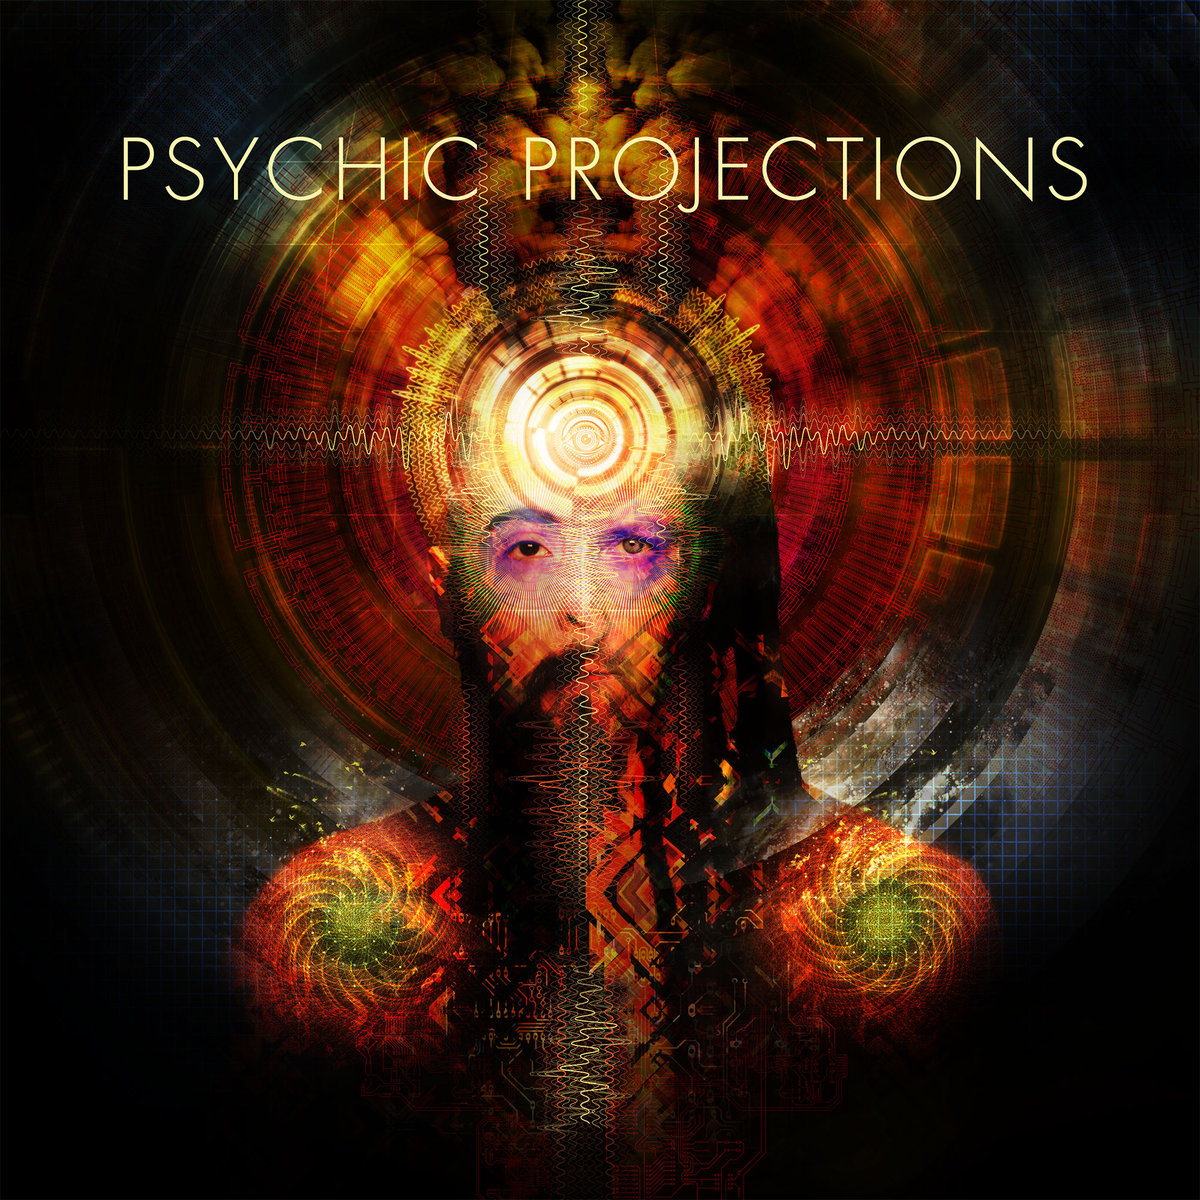 Zebbler Encanti Experience - Data Mind @ 'Psychic Projections' album (moombahton, trap)